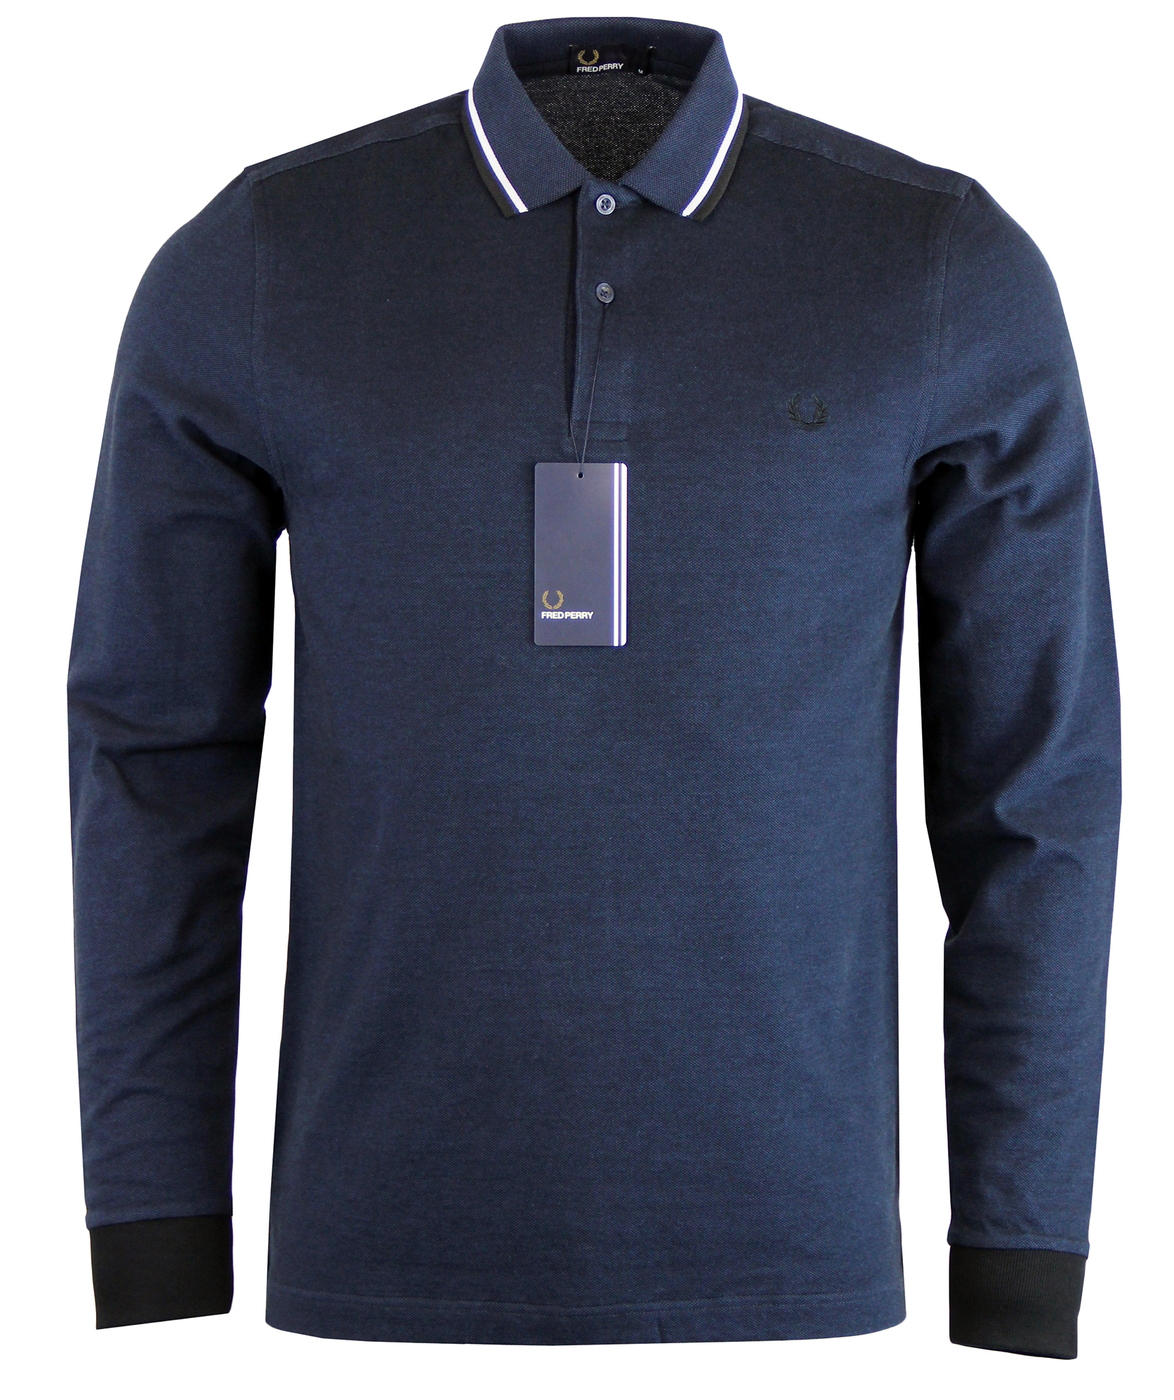 FRED PERRY Retro Mod Indie Twin Tipped LS Polo